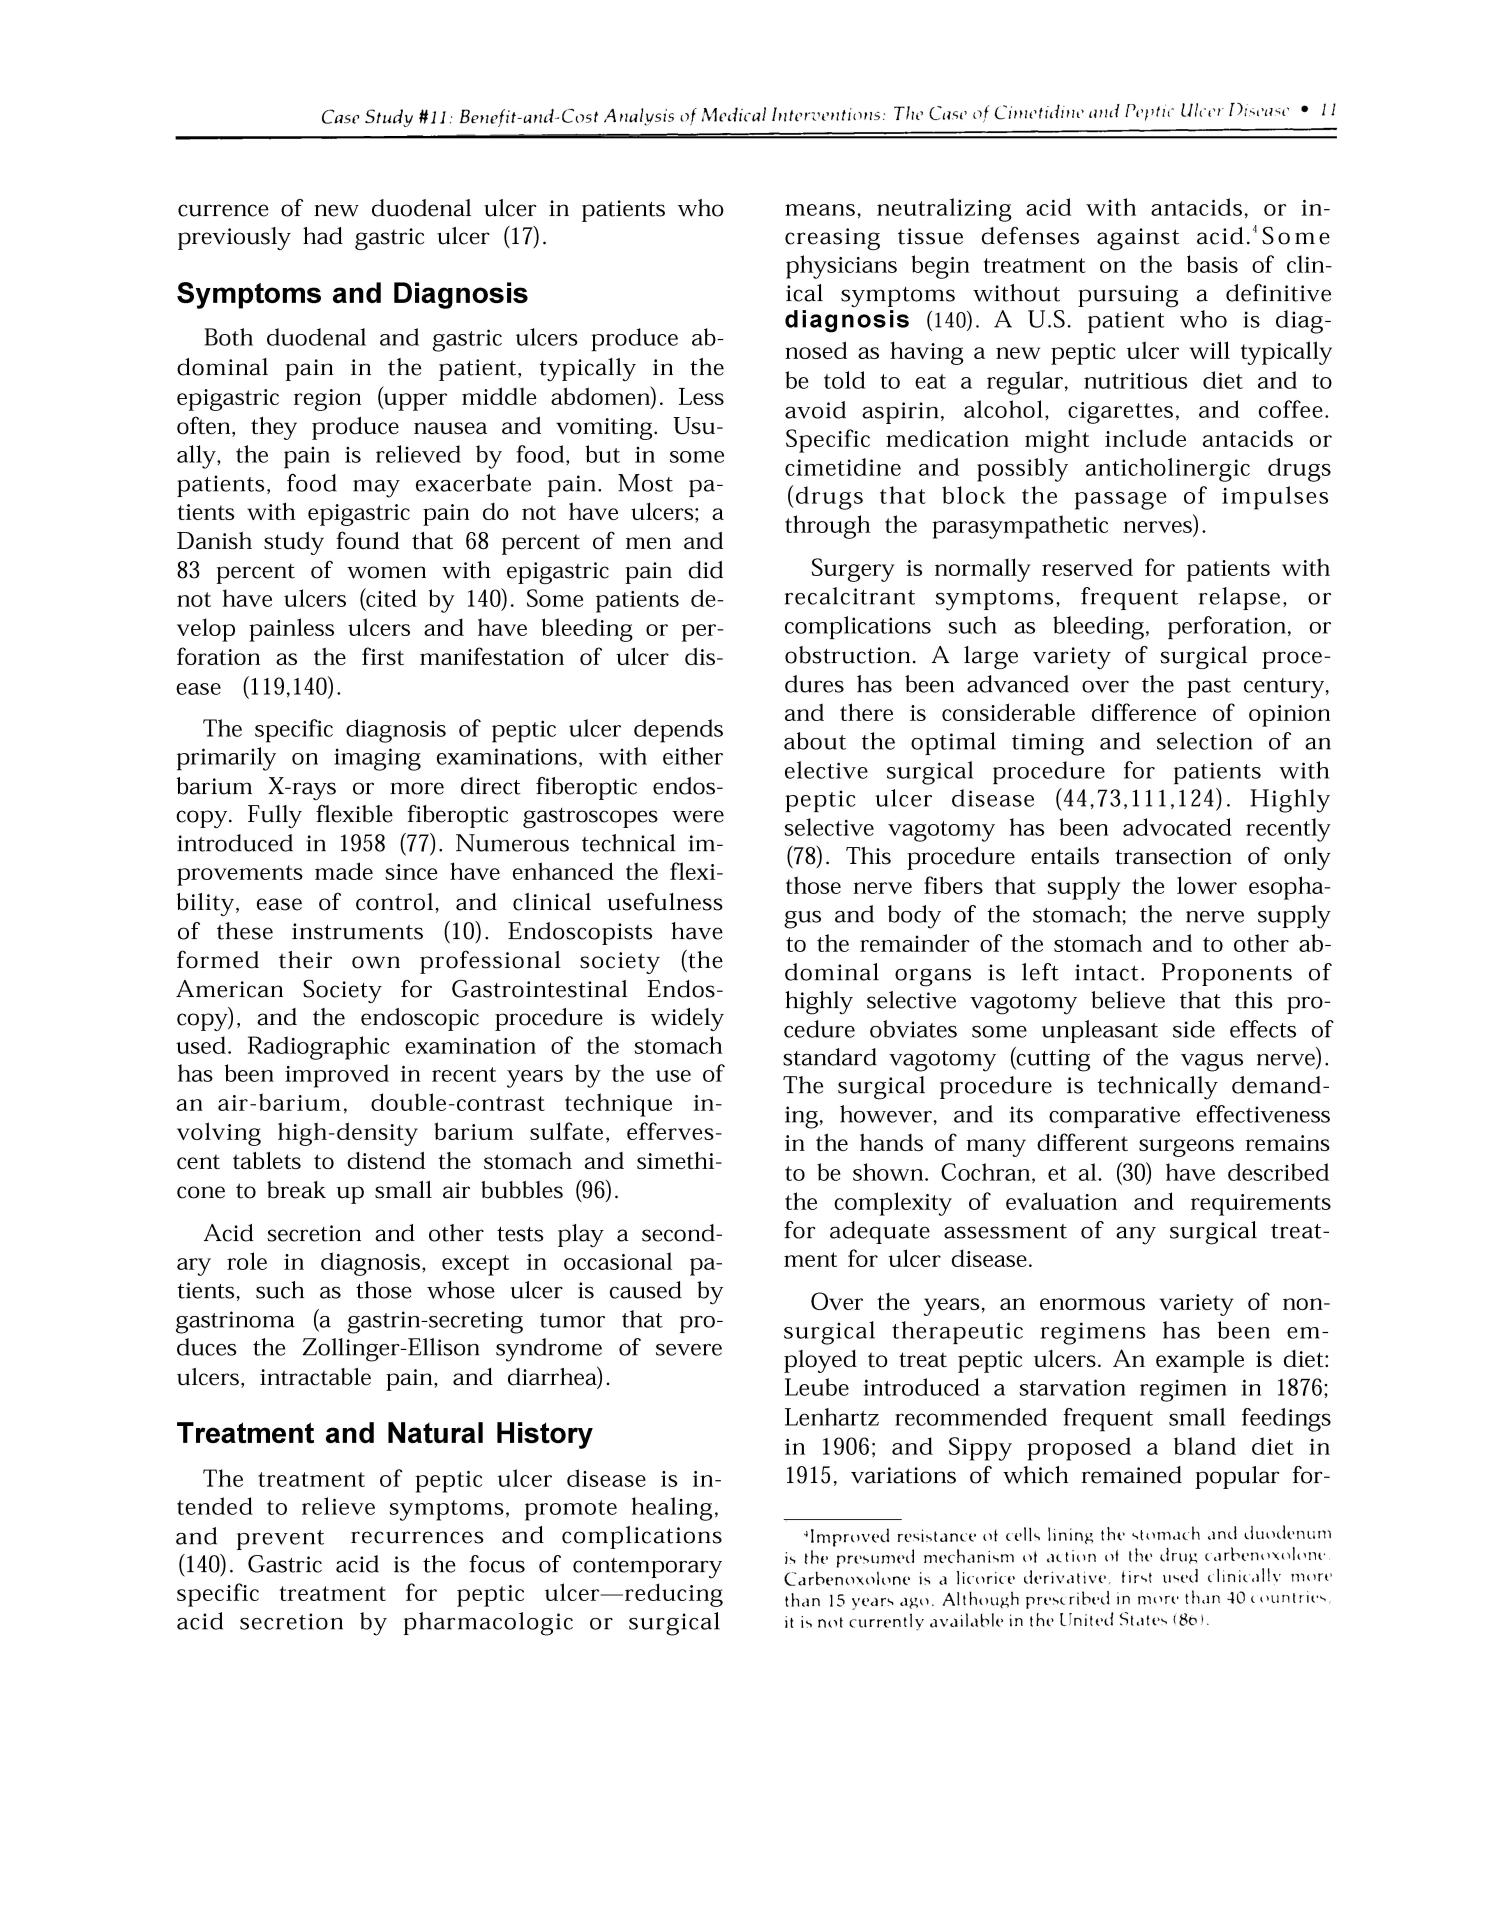 The Implications of Cost-Effectiveness Analysis of Medical